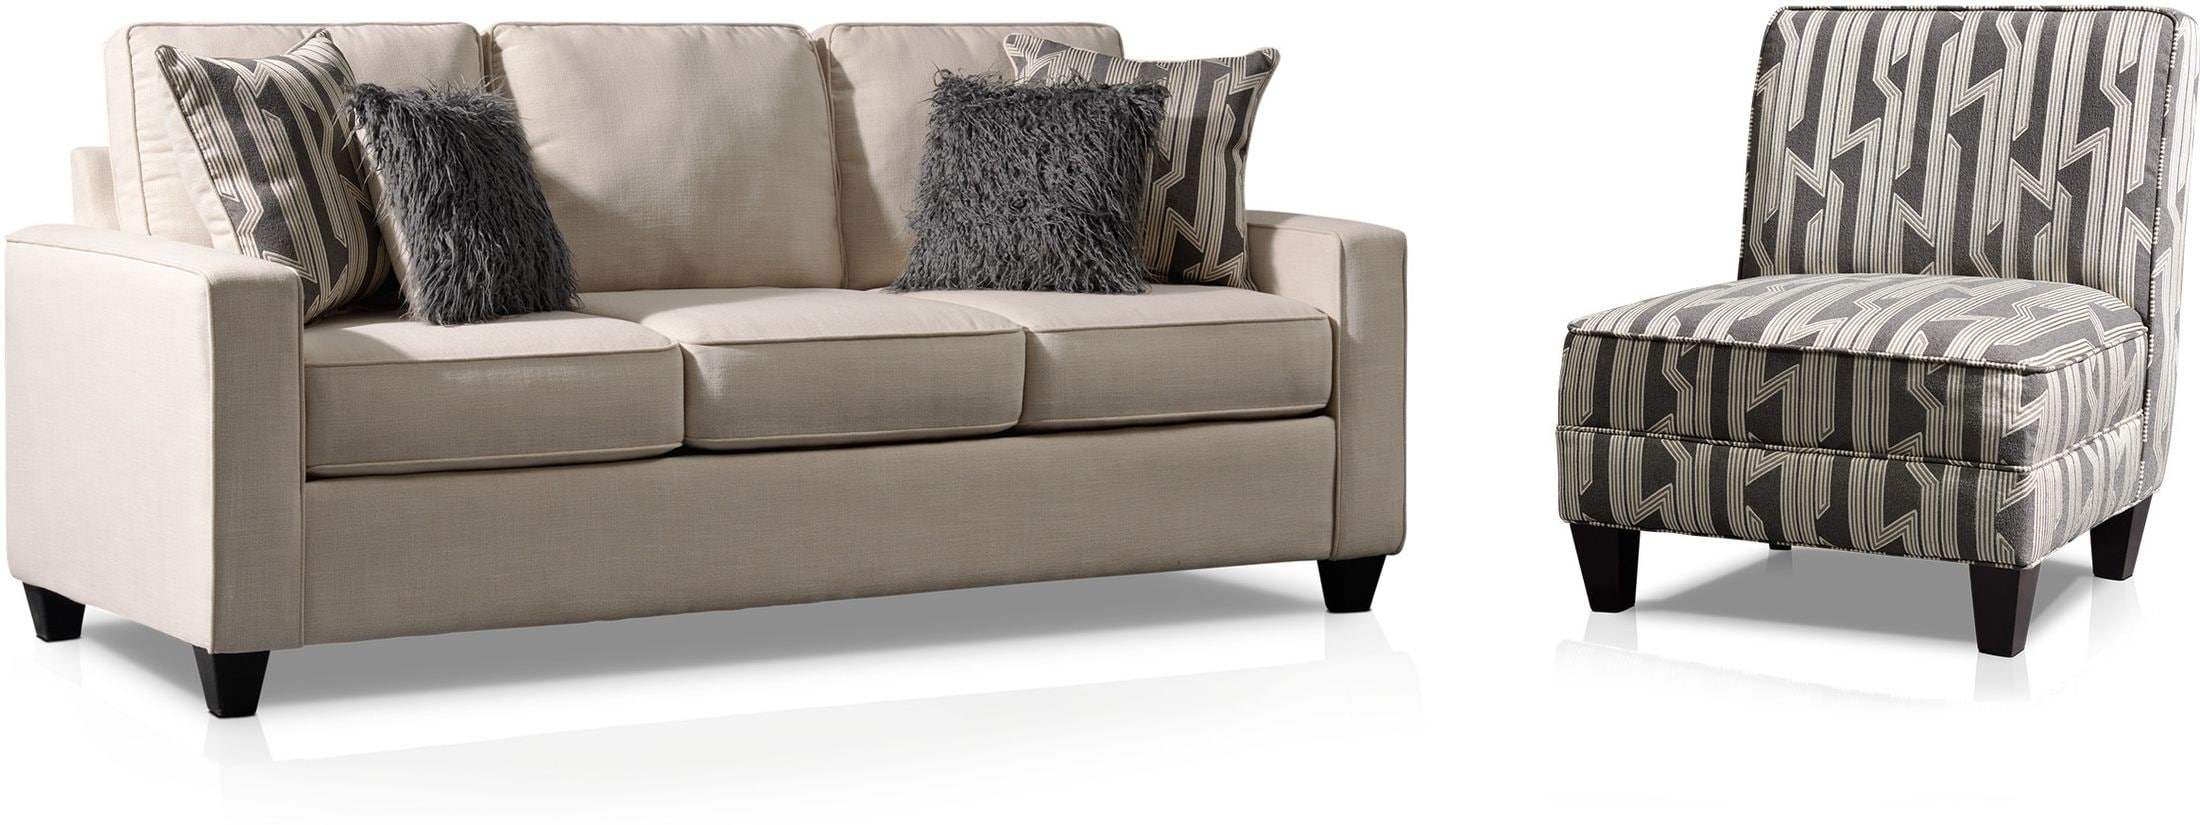 Living Room Furniture - Burton Sofa and Accent Chair Set